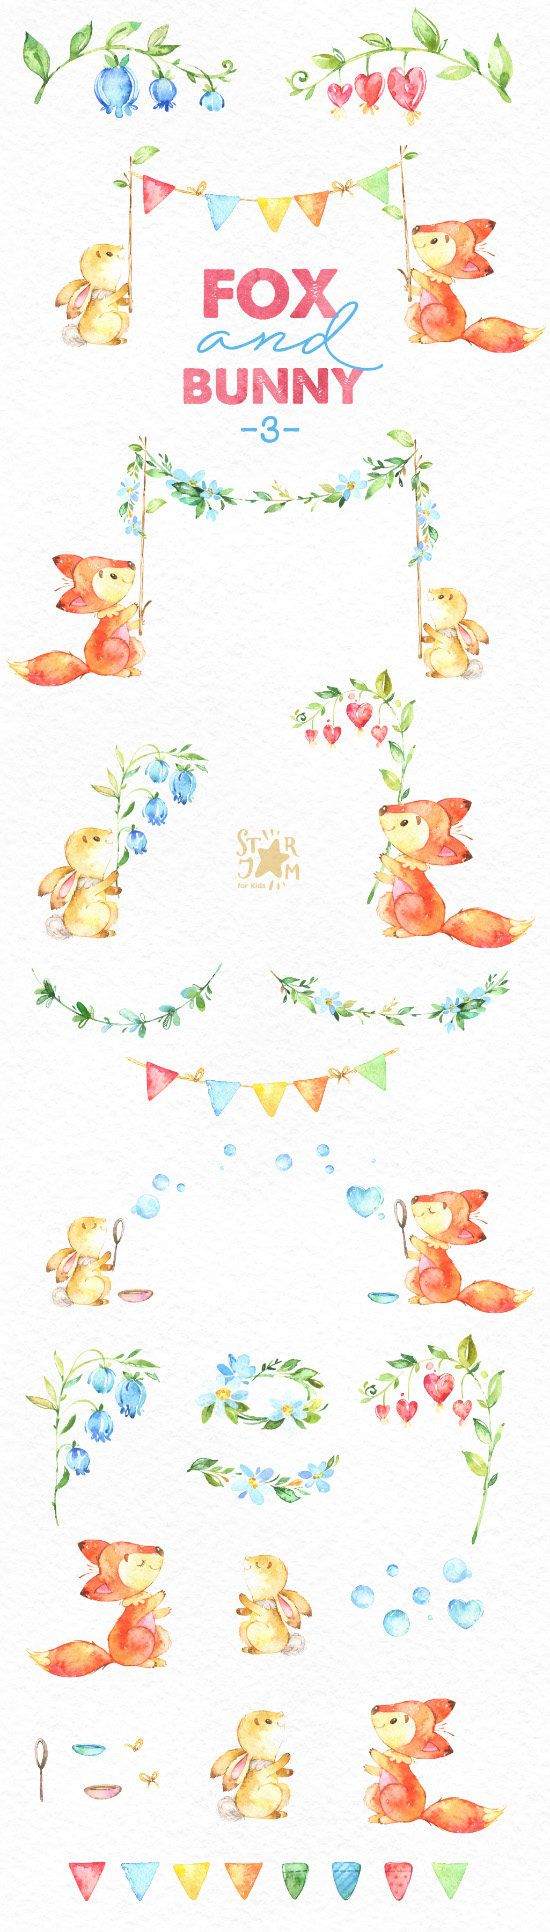 This part 3 of Cute Fox and Bunny set is just what you needed for the perfect invitations, craft projects, paper products, party decorations, printable, greetings cards, posters, stationery, scrapbooking, stickers, t-shirts, baby clothes, web designs and much more. :::::: DETAILS